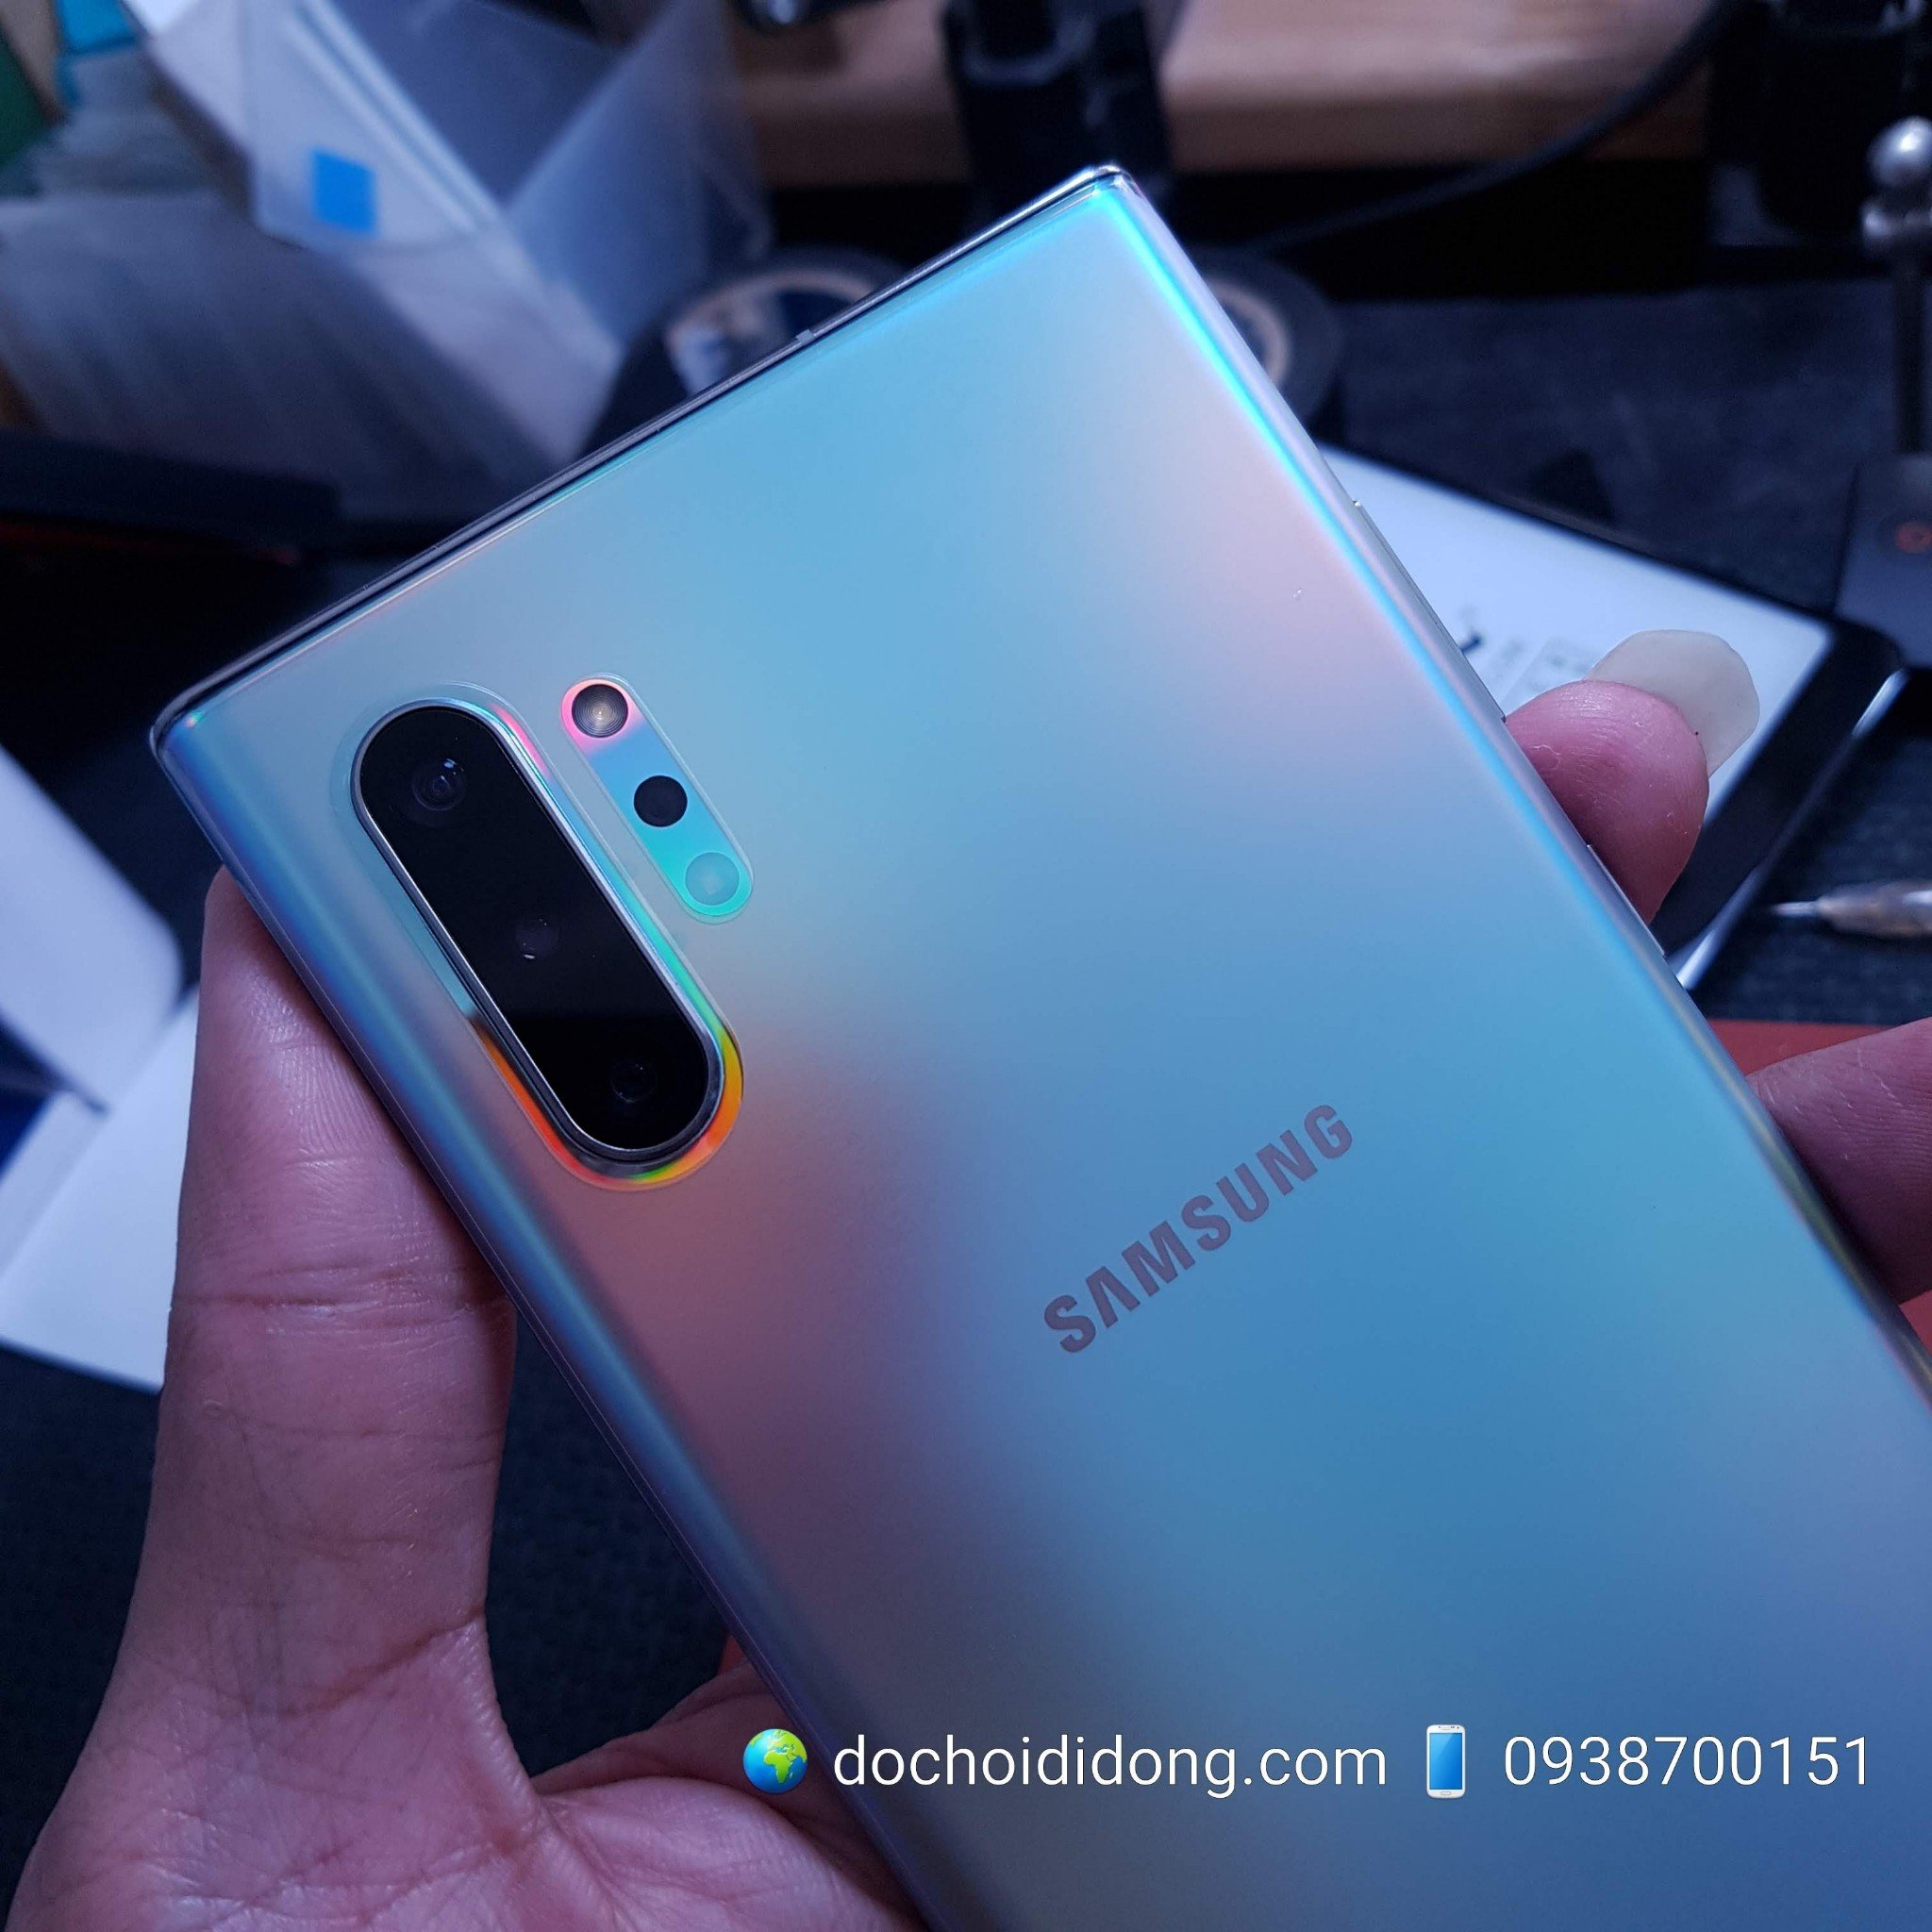 mieng-dan-lung-nham-trong-samsung-note-10-plus-matte-flexible